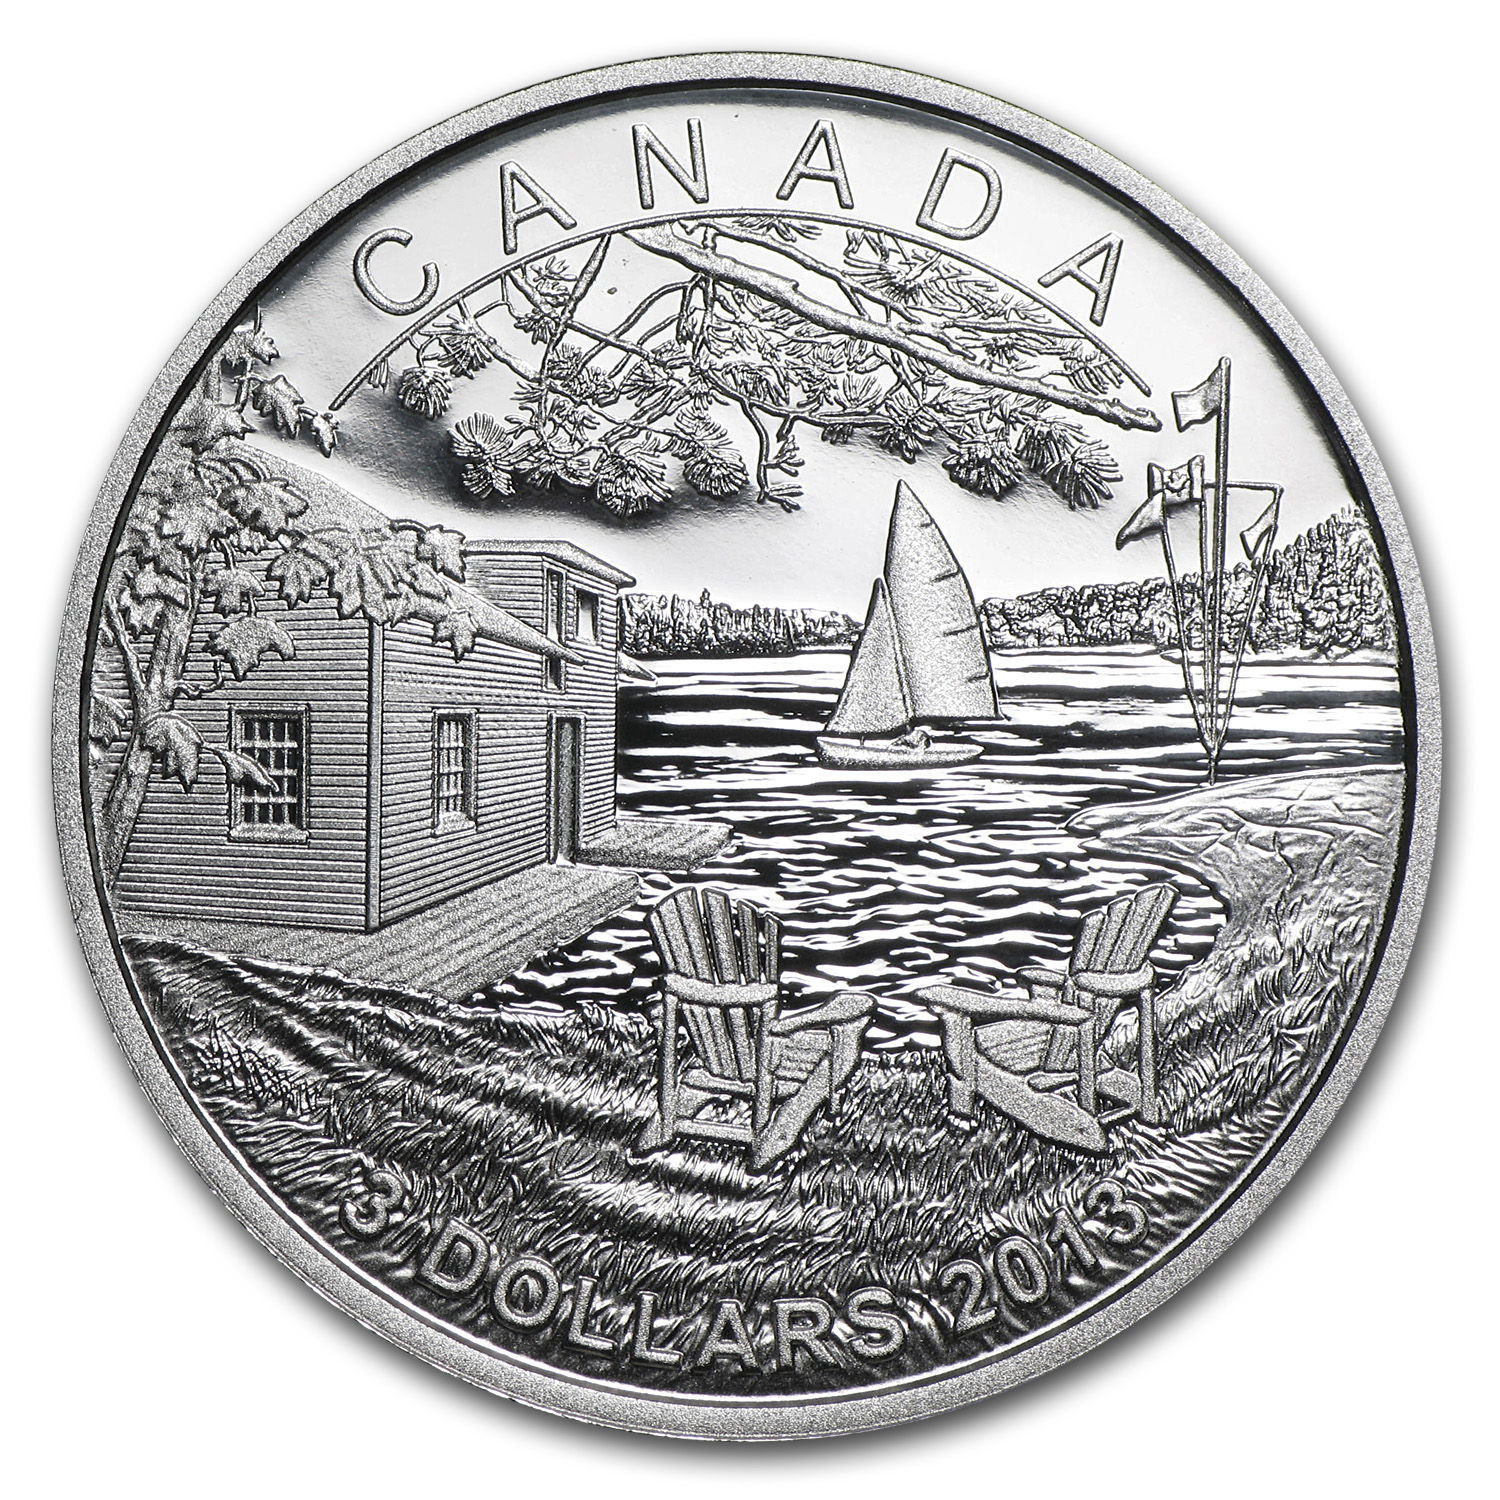 2013 1/4 oz Silver Canadian $3 - Martin Short Presents Canada